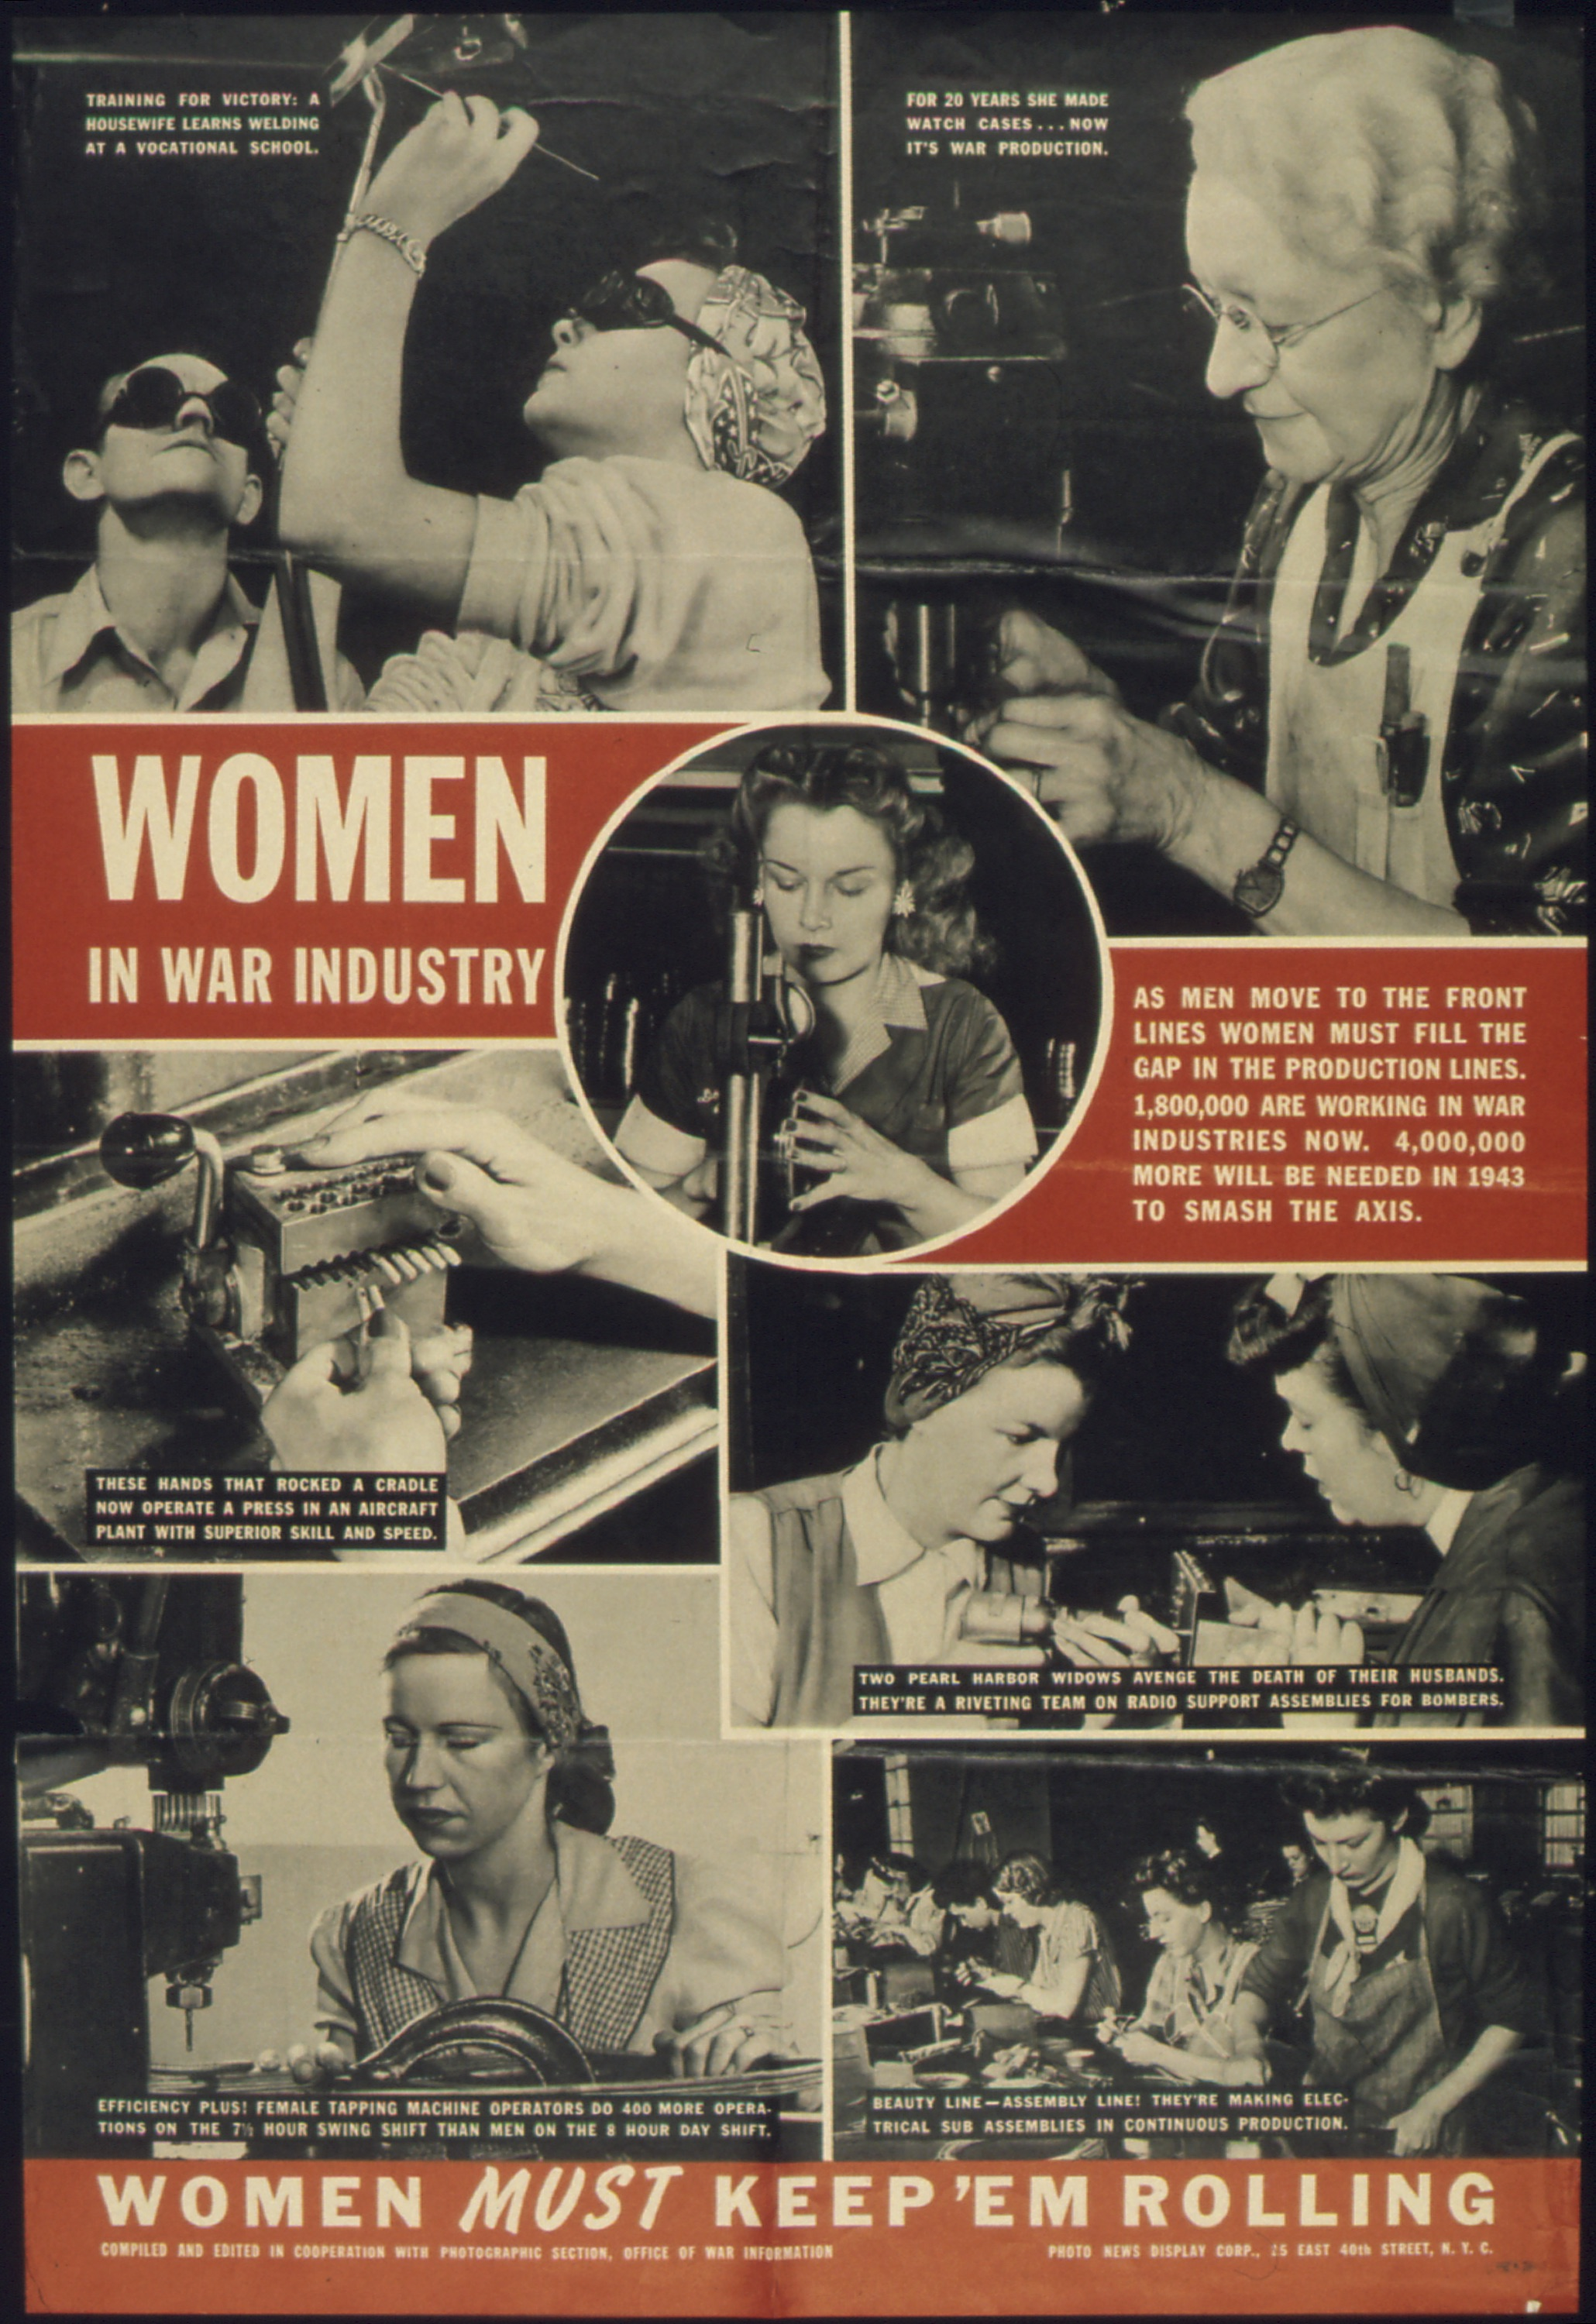 A Poster Highlighting Women Working In The War Industry